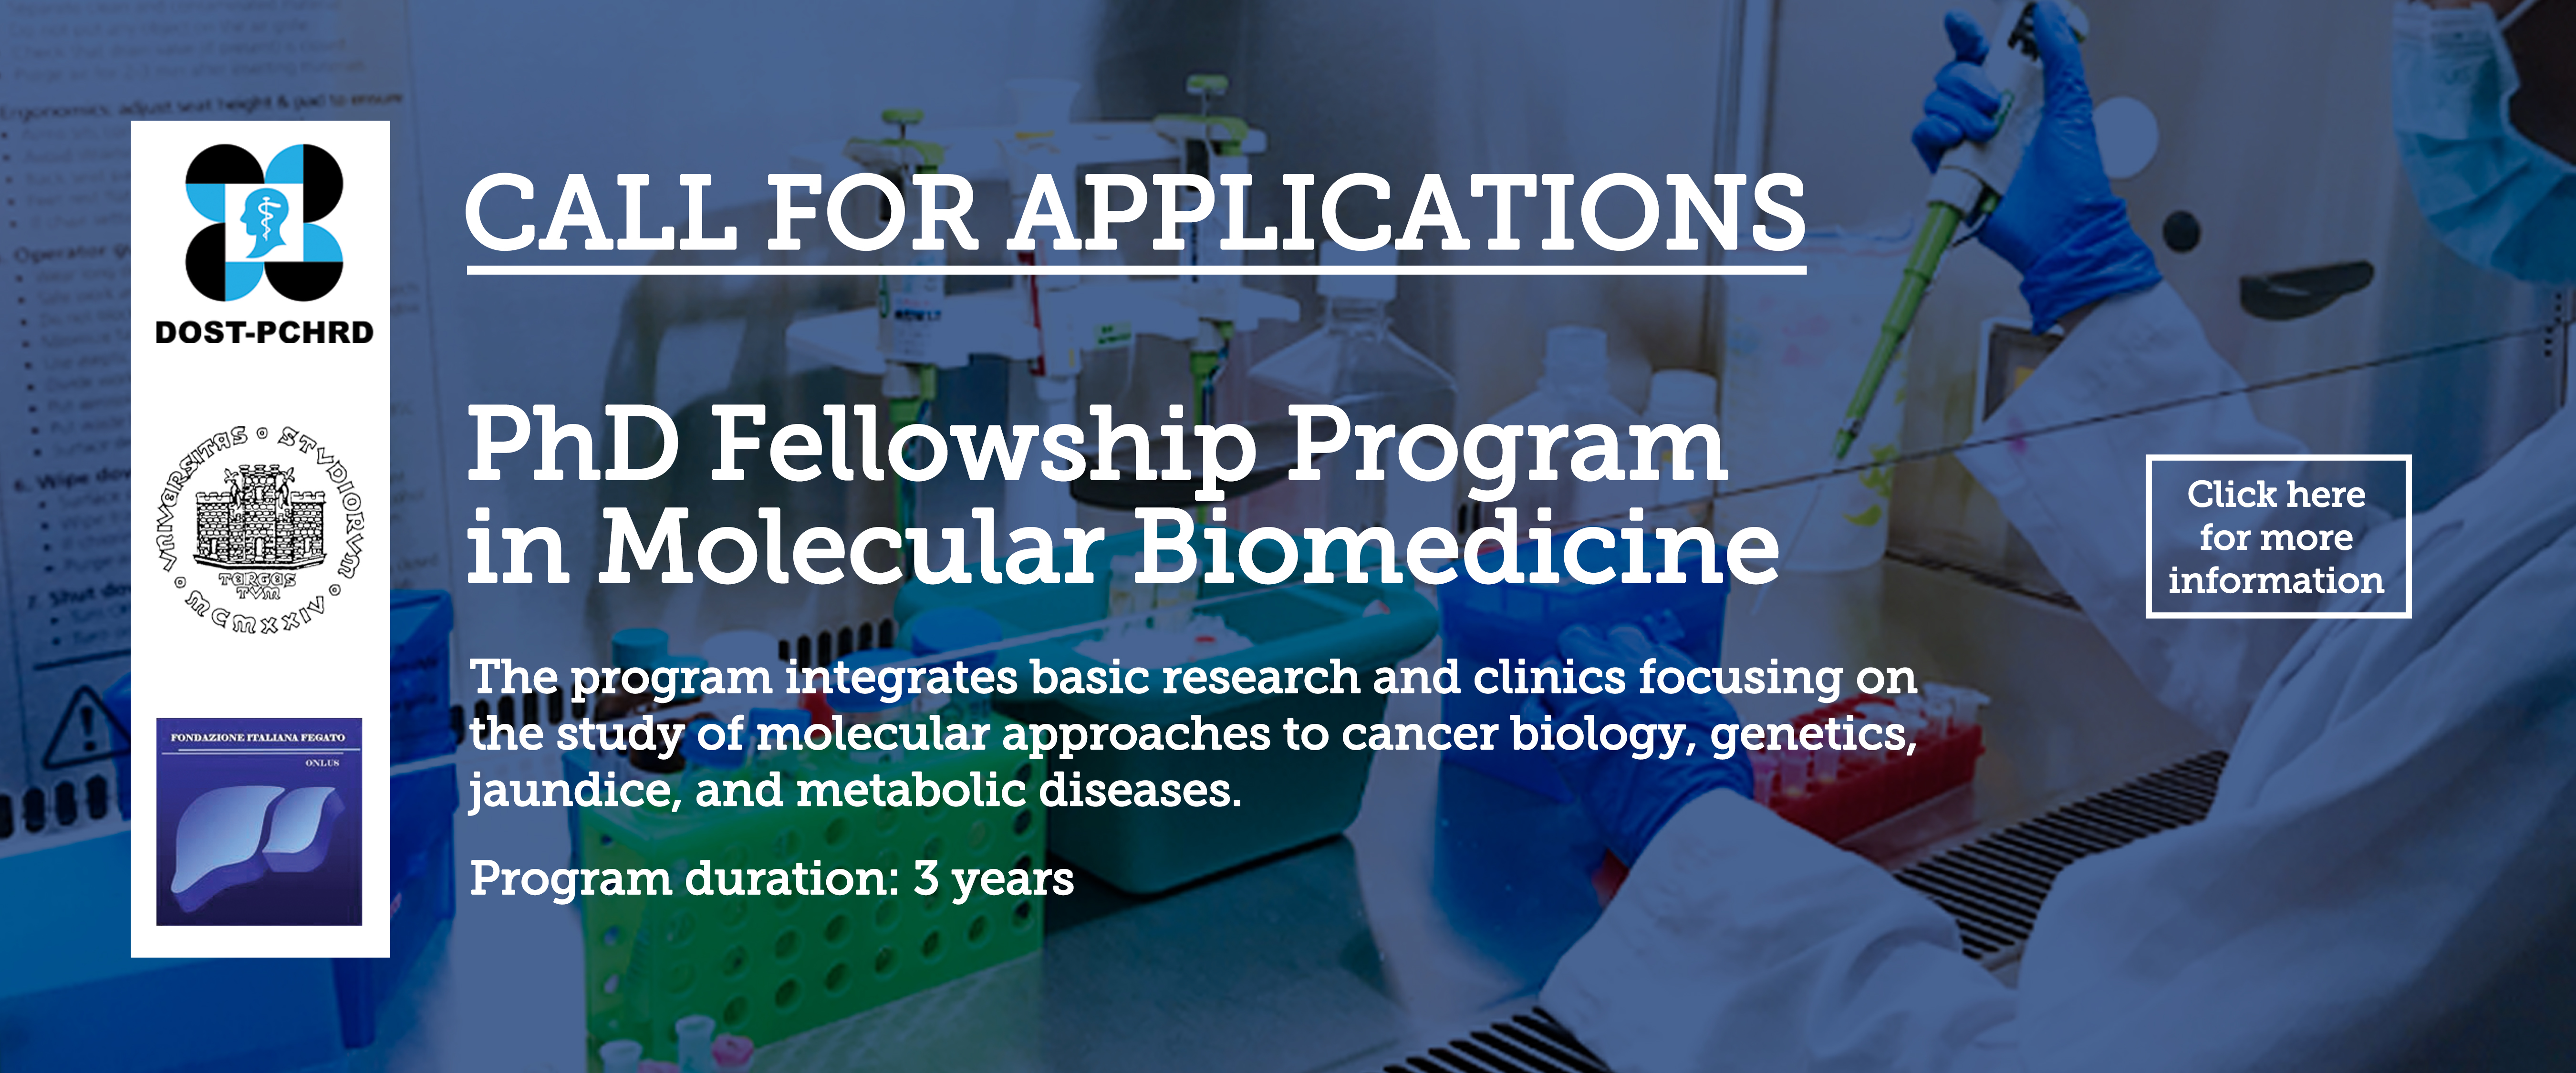 Molecular Biomedicine PhD Fellowship